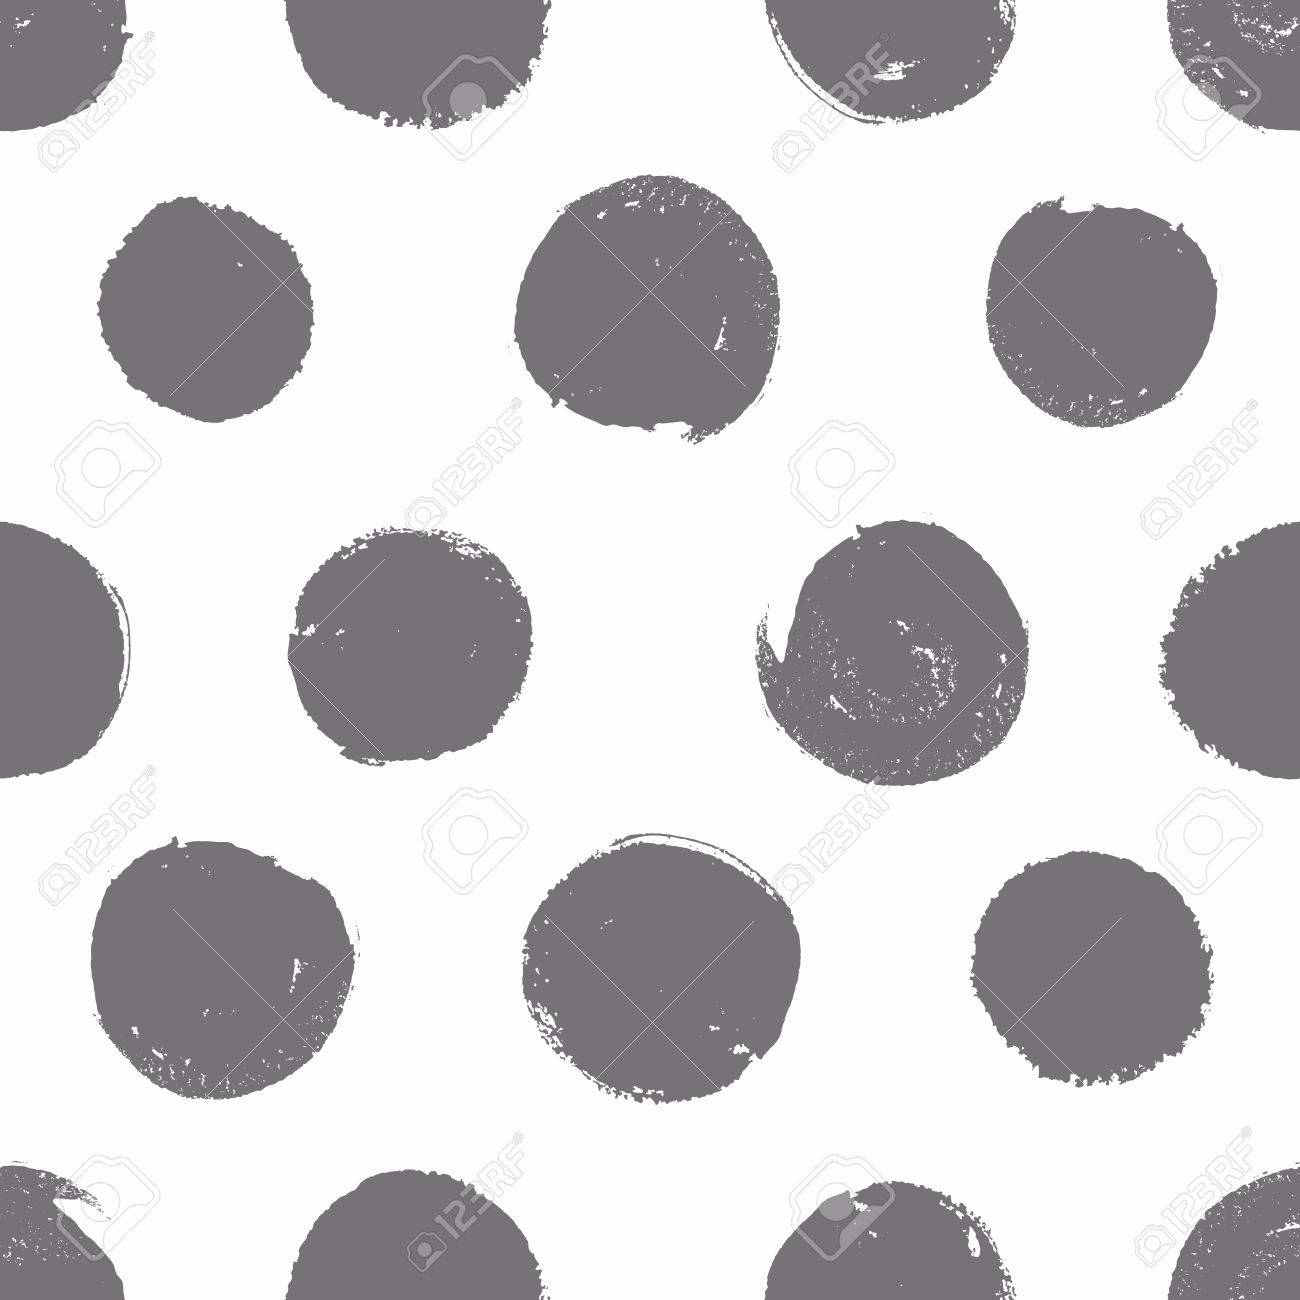 Seamless pattern. Background with painted circles. Vector texture. Brush drawn - rough, artistic edges. - 50179147